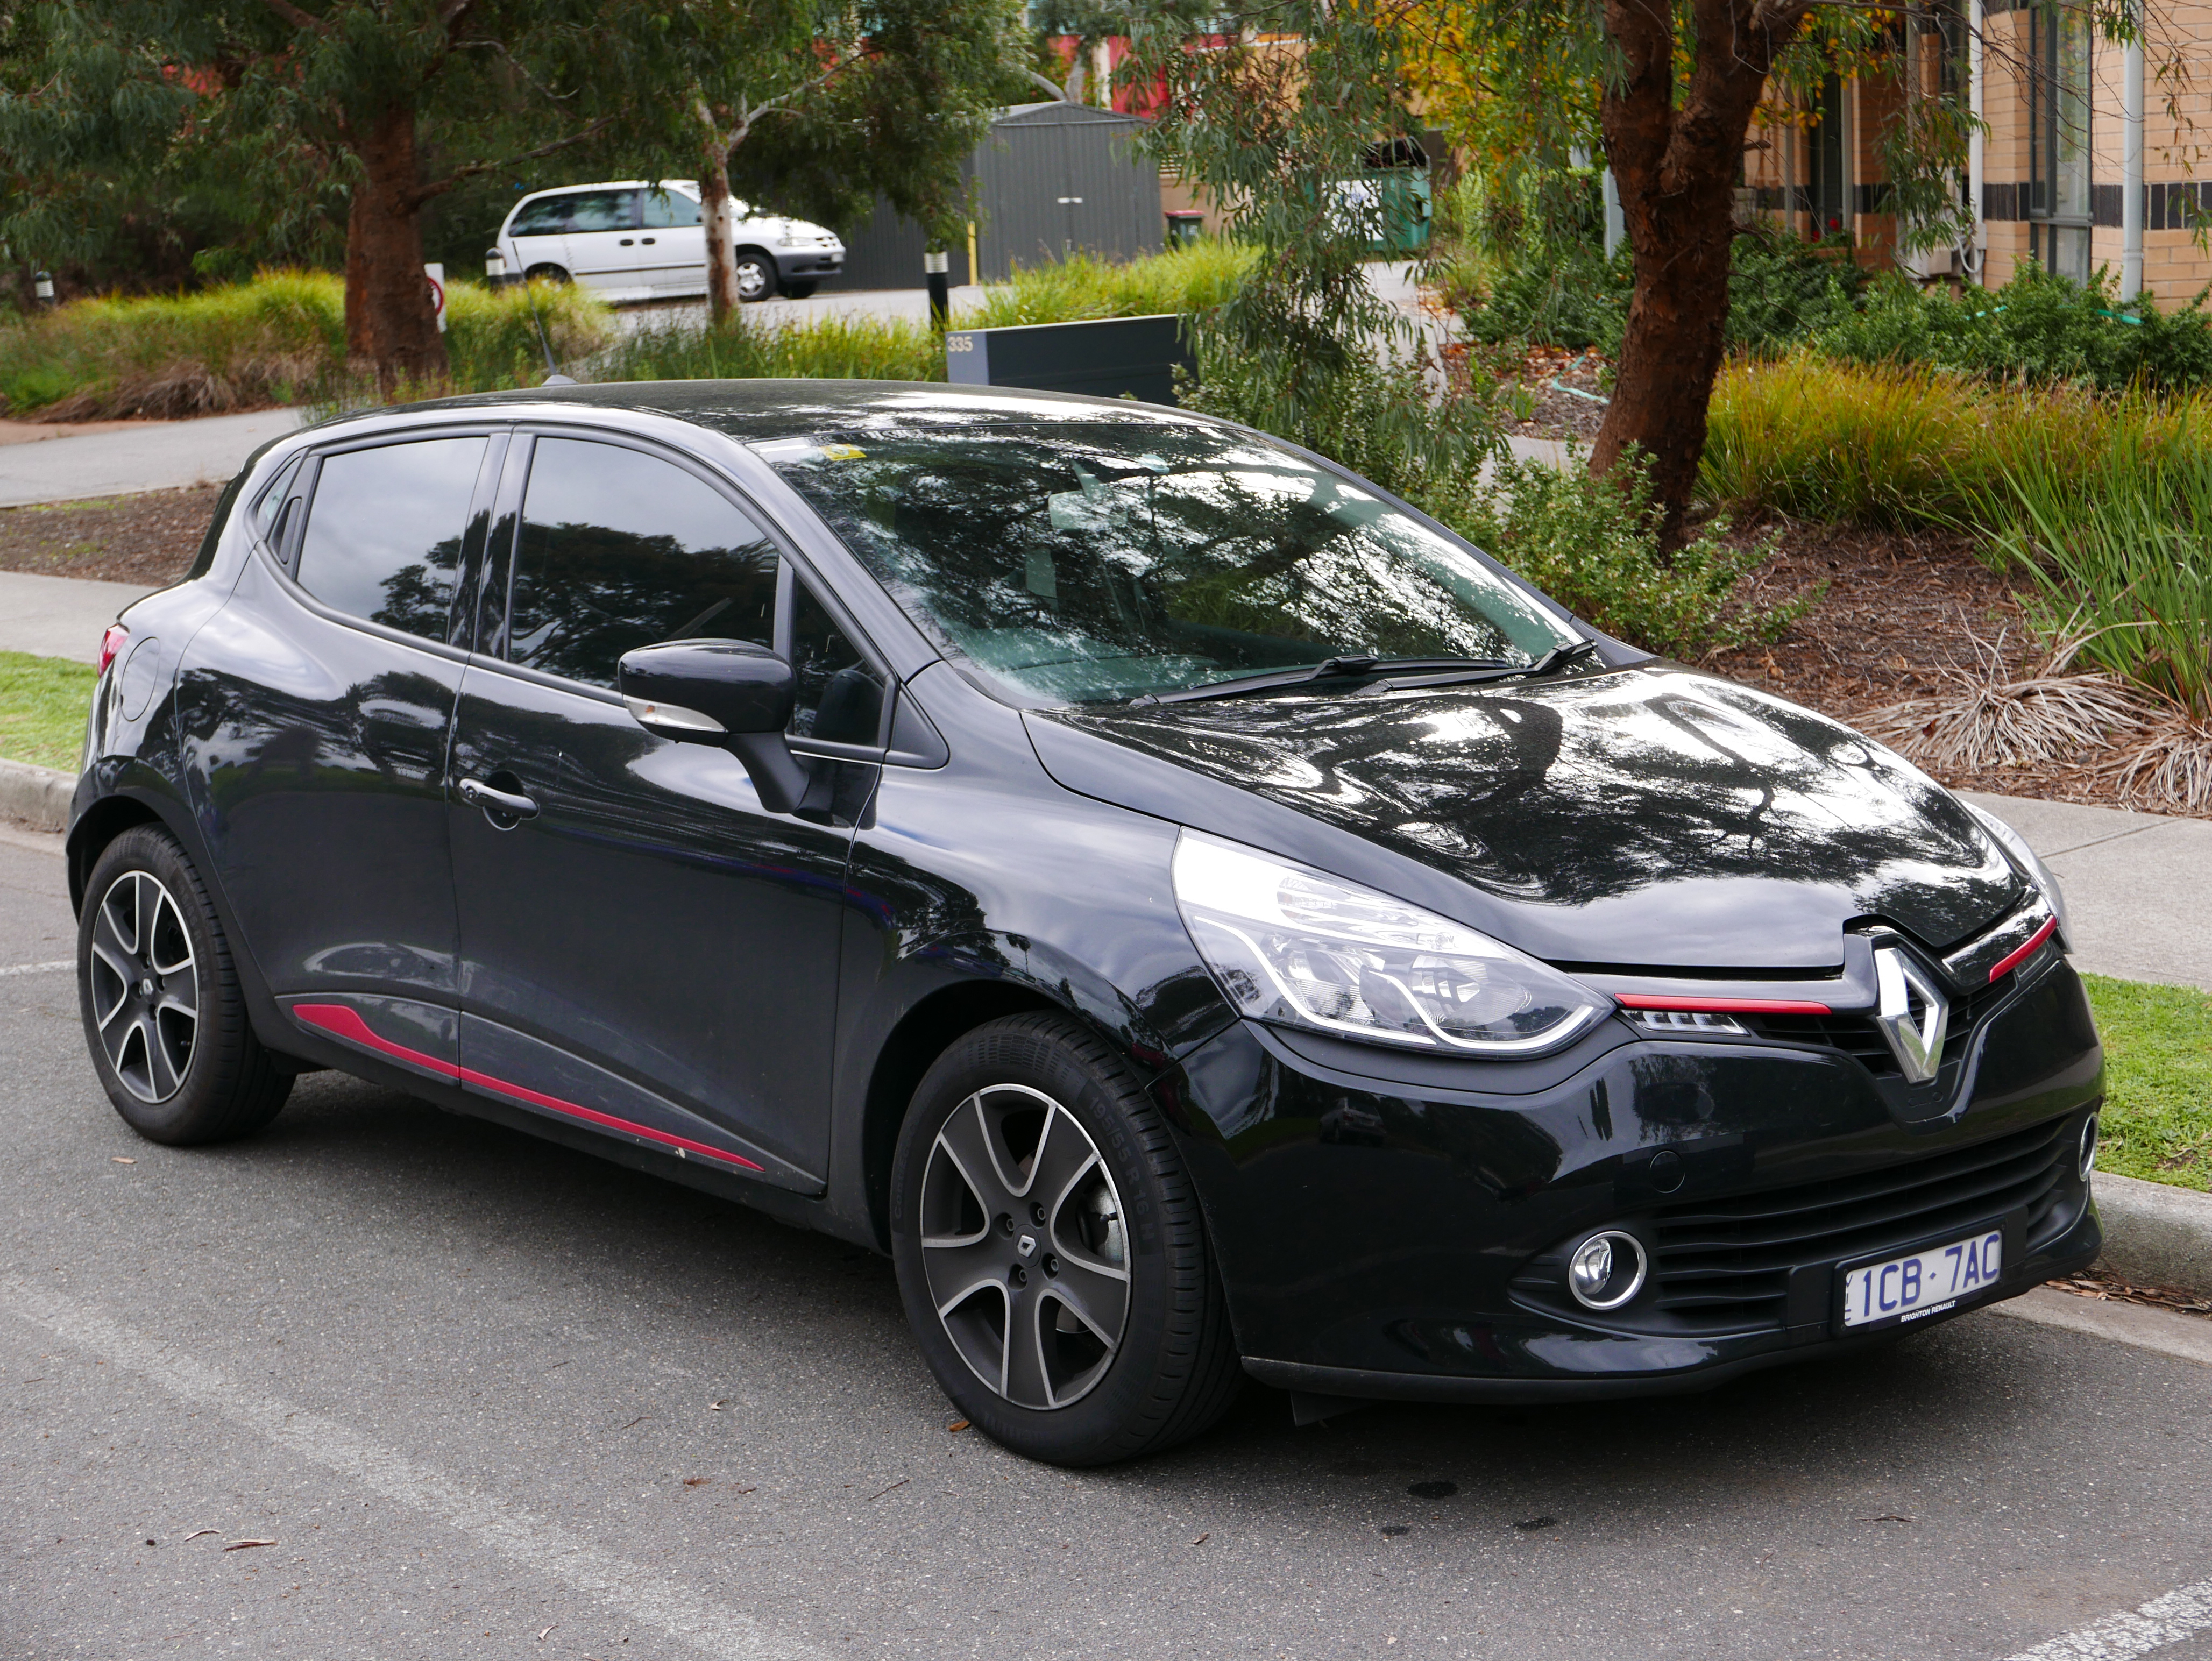 2015 Renault Clio Owners Manual - New Car Release Date and ...